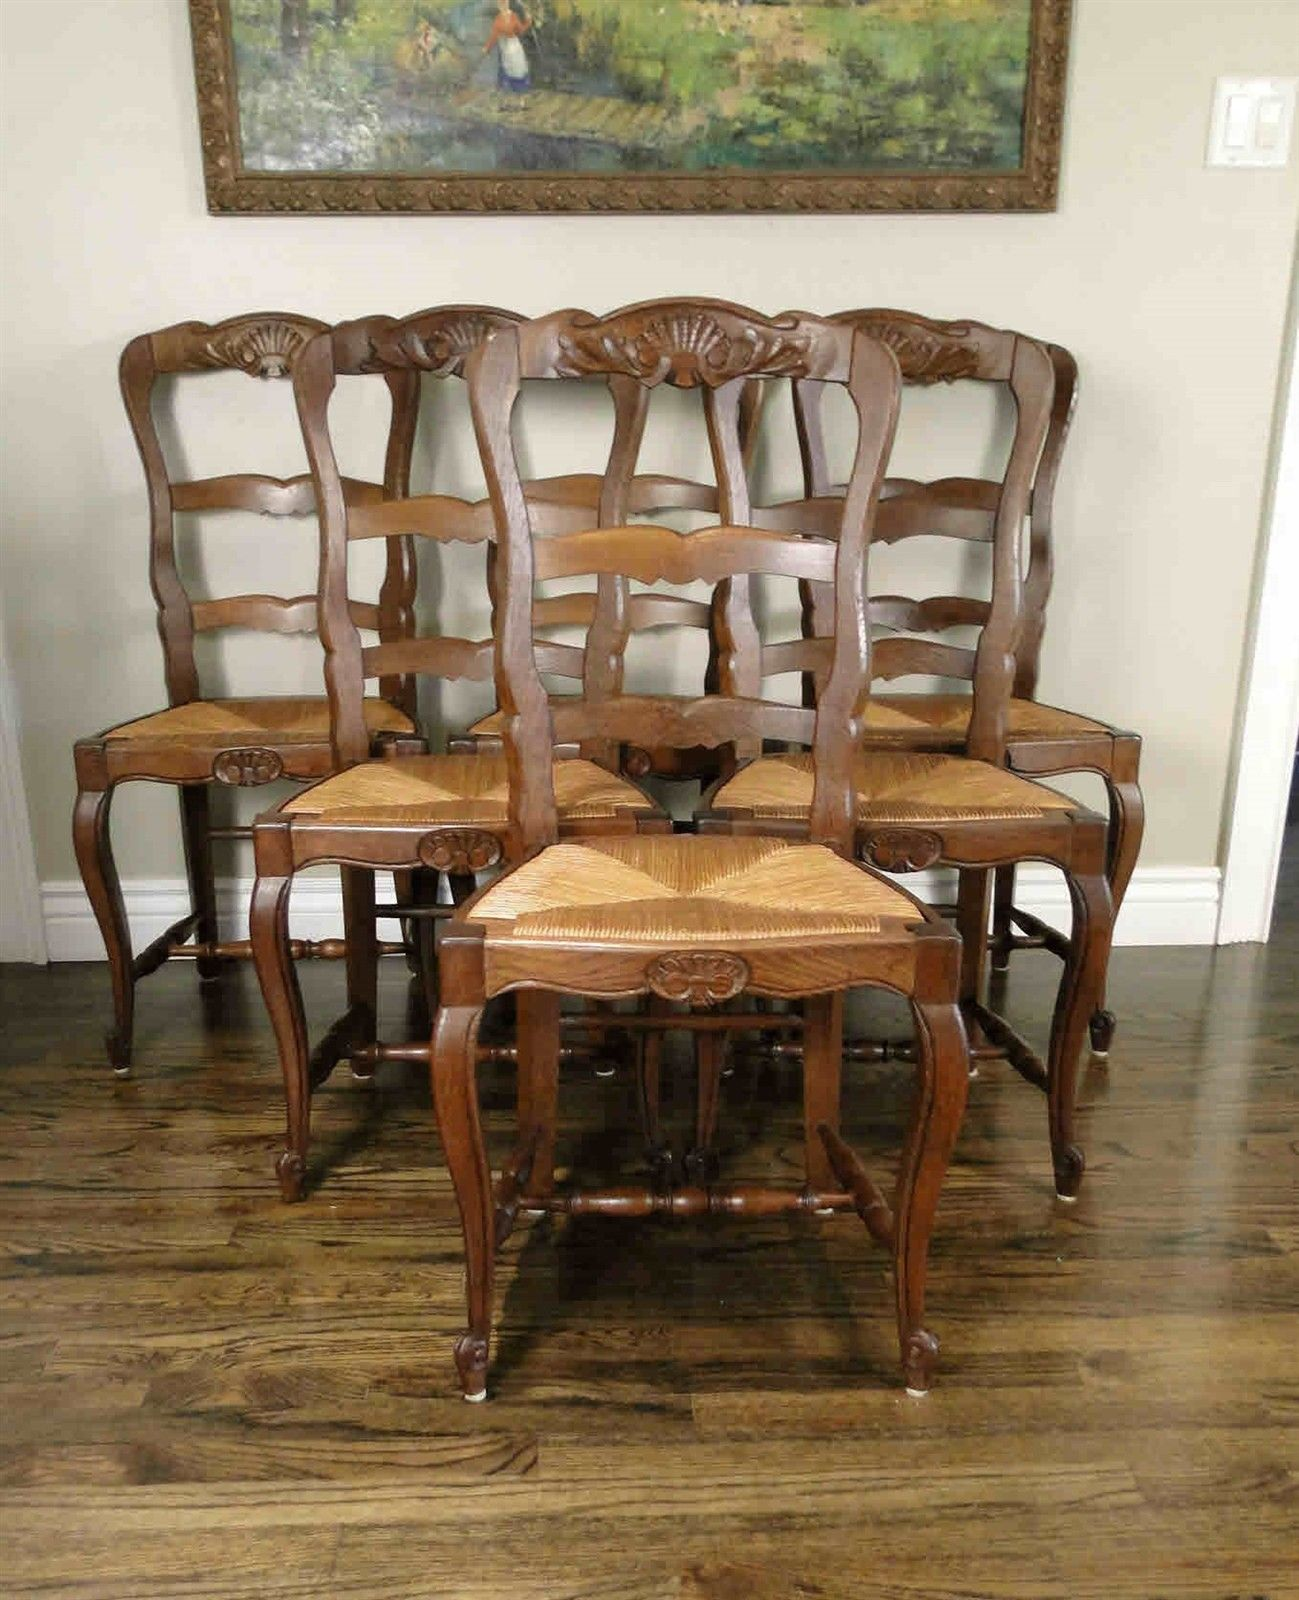 Antique French Dining Chairs Rush Seats Shells Tall Ladder Back Stretchers Set of 6